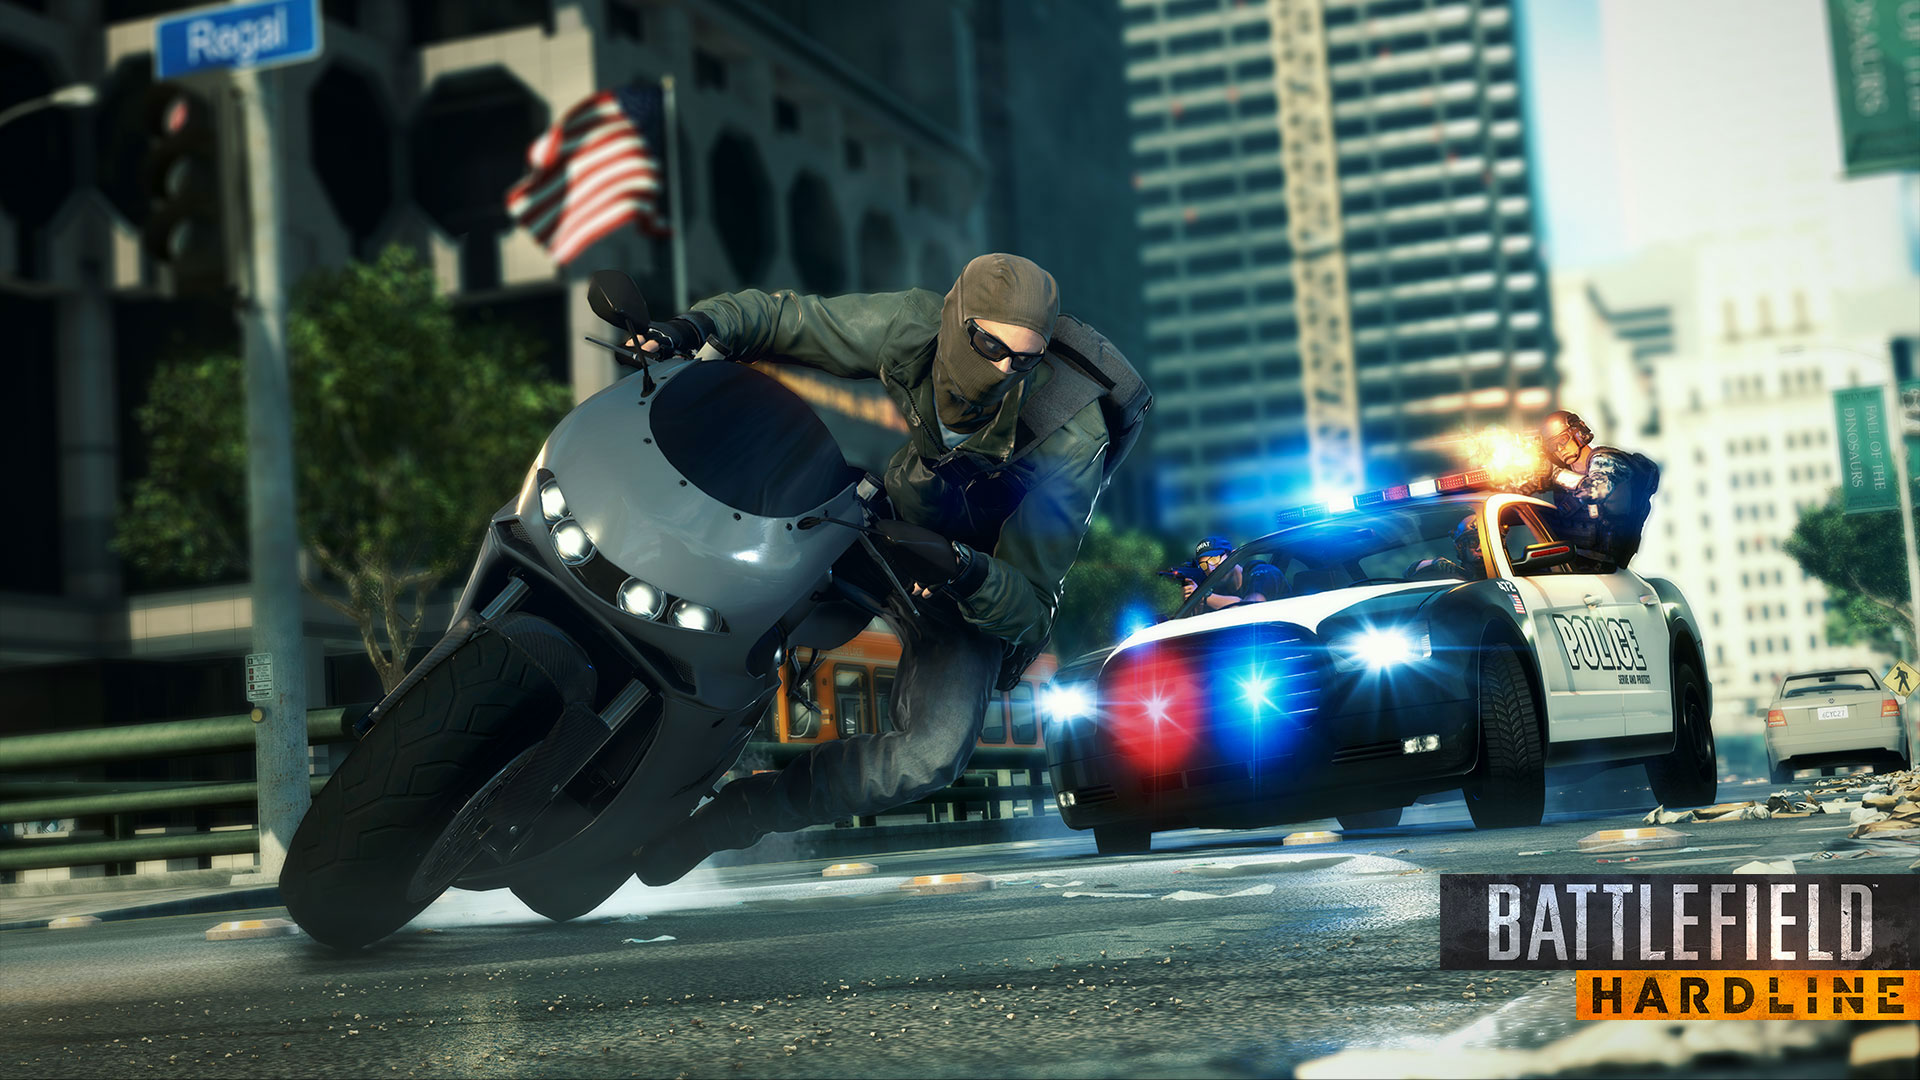 I won't buy Battlefield Hardline at launch, and neither should you